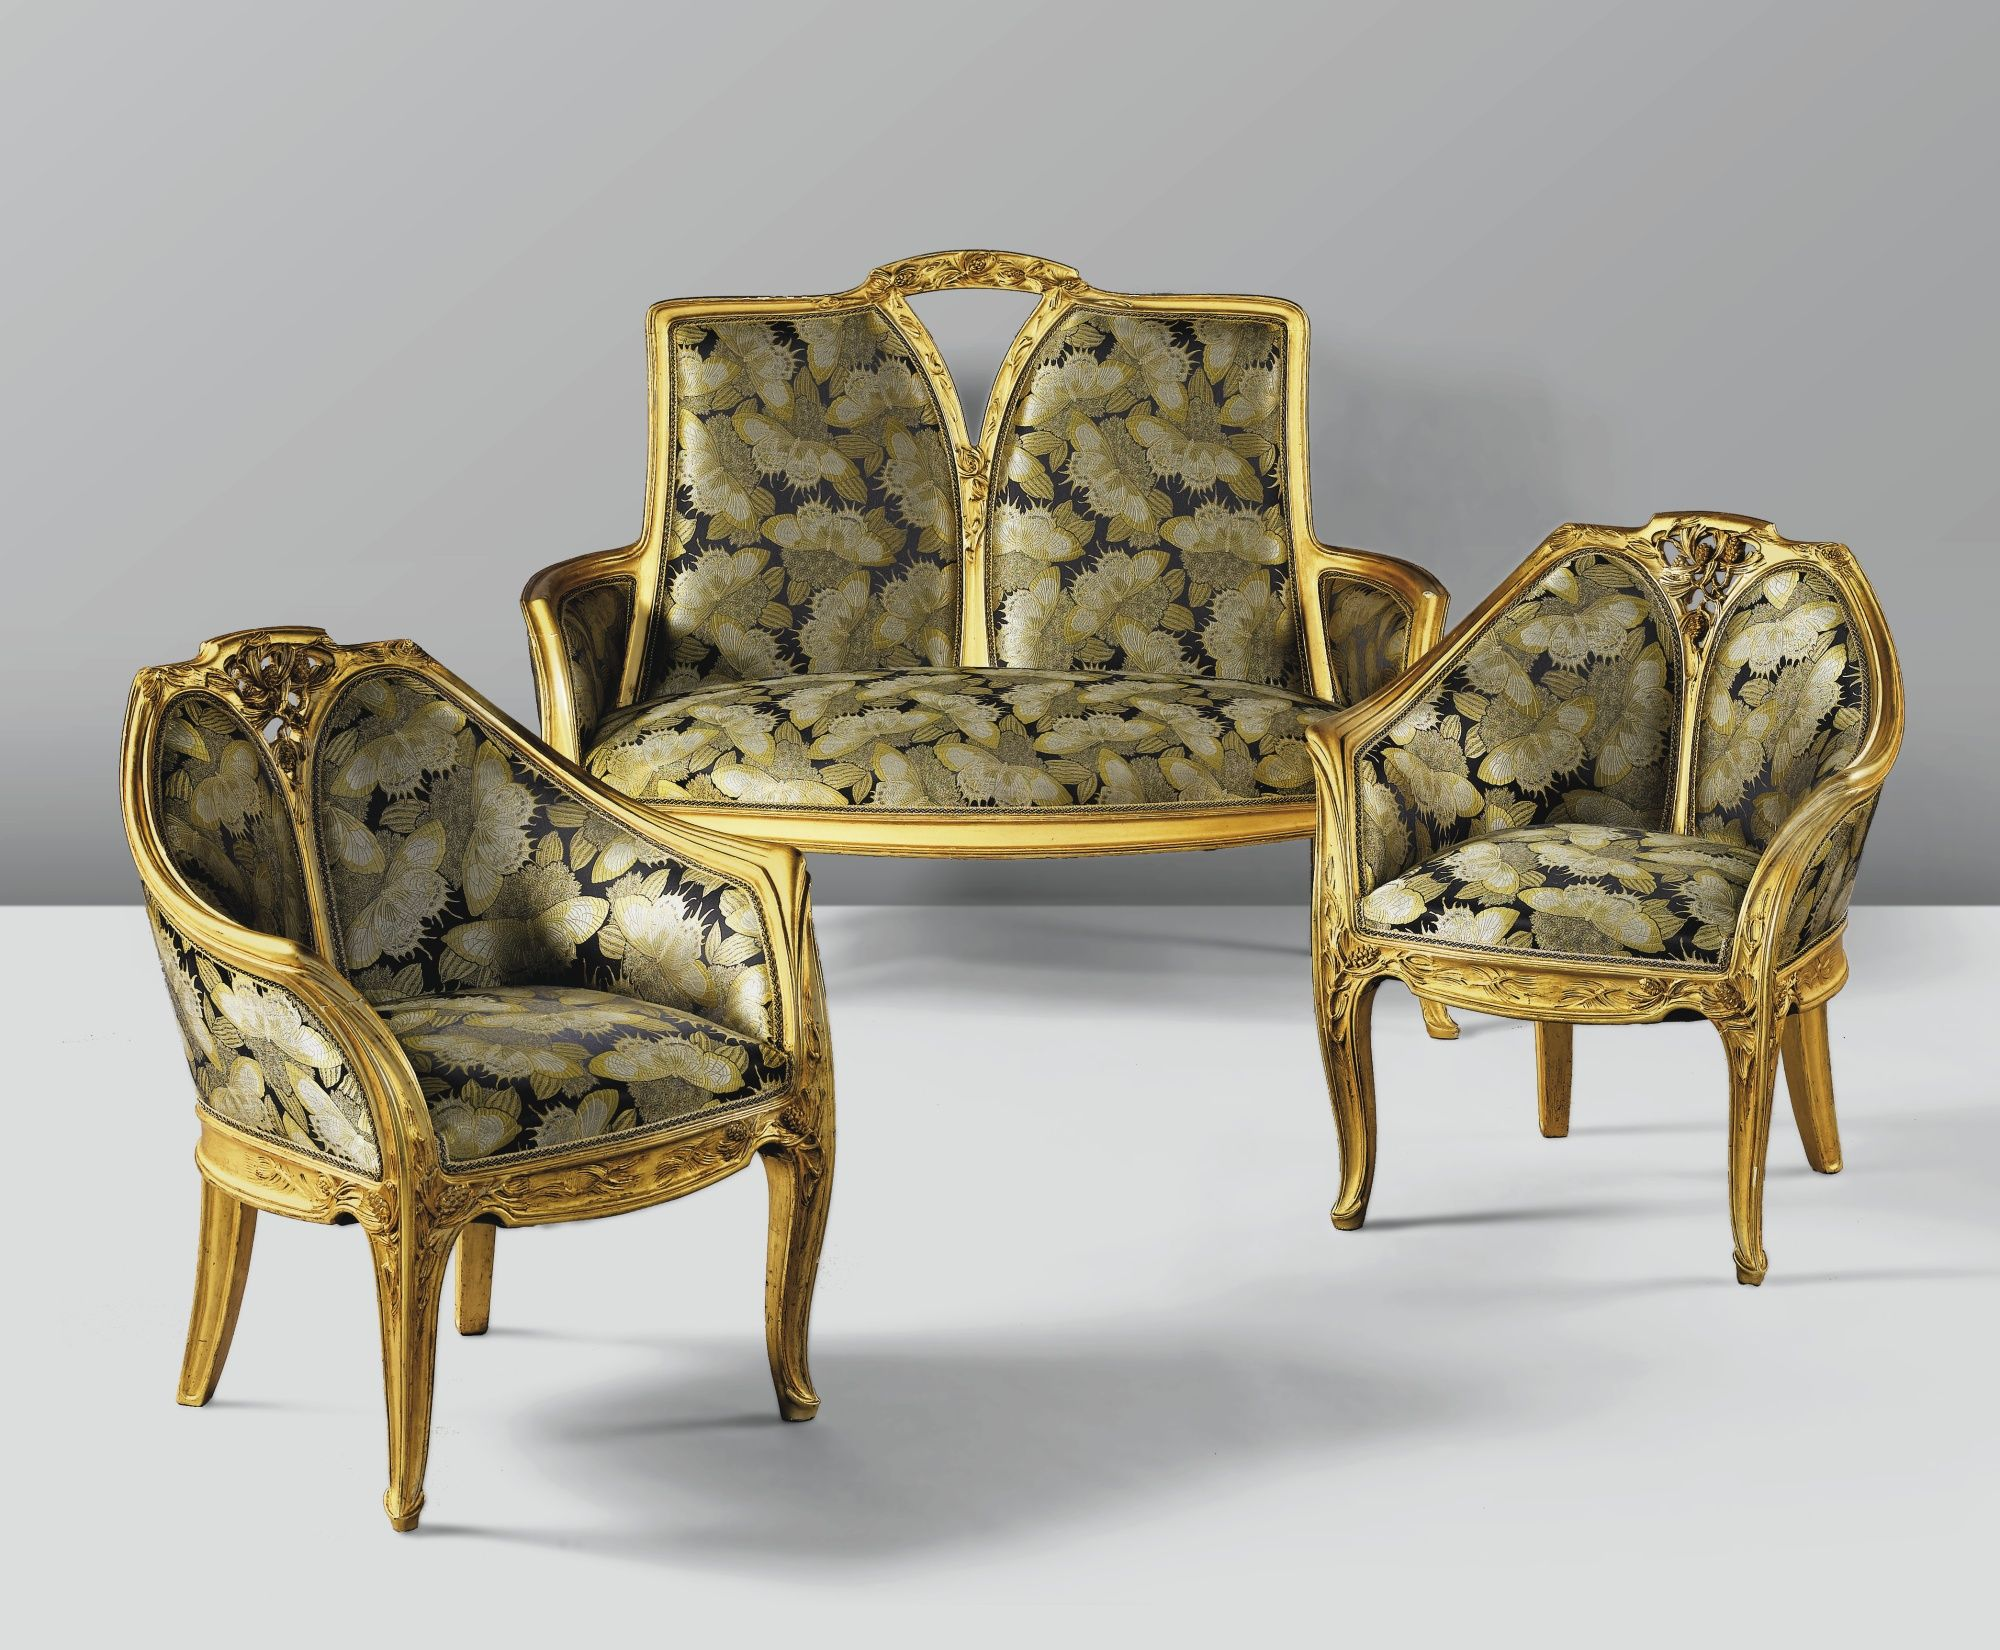 modern art nouveau furniture. \u0027AUX PINS\u0027, A GILT WOOD AND RE-UPHOLSTERED SALON SUITE BY LOUIS. Art Nouveau FurnitureArt InteriorSalon FurnitureModern Modern Furniture